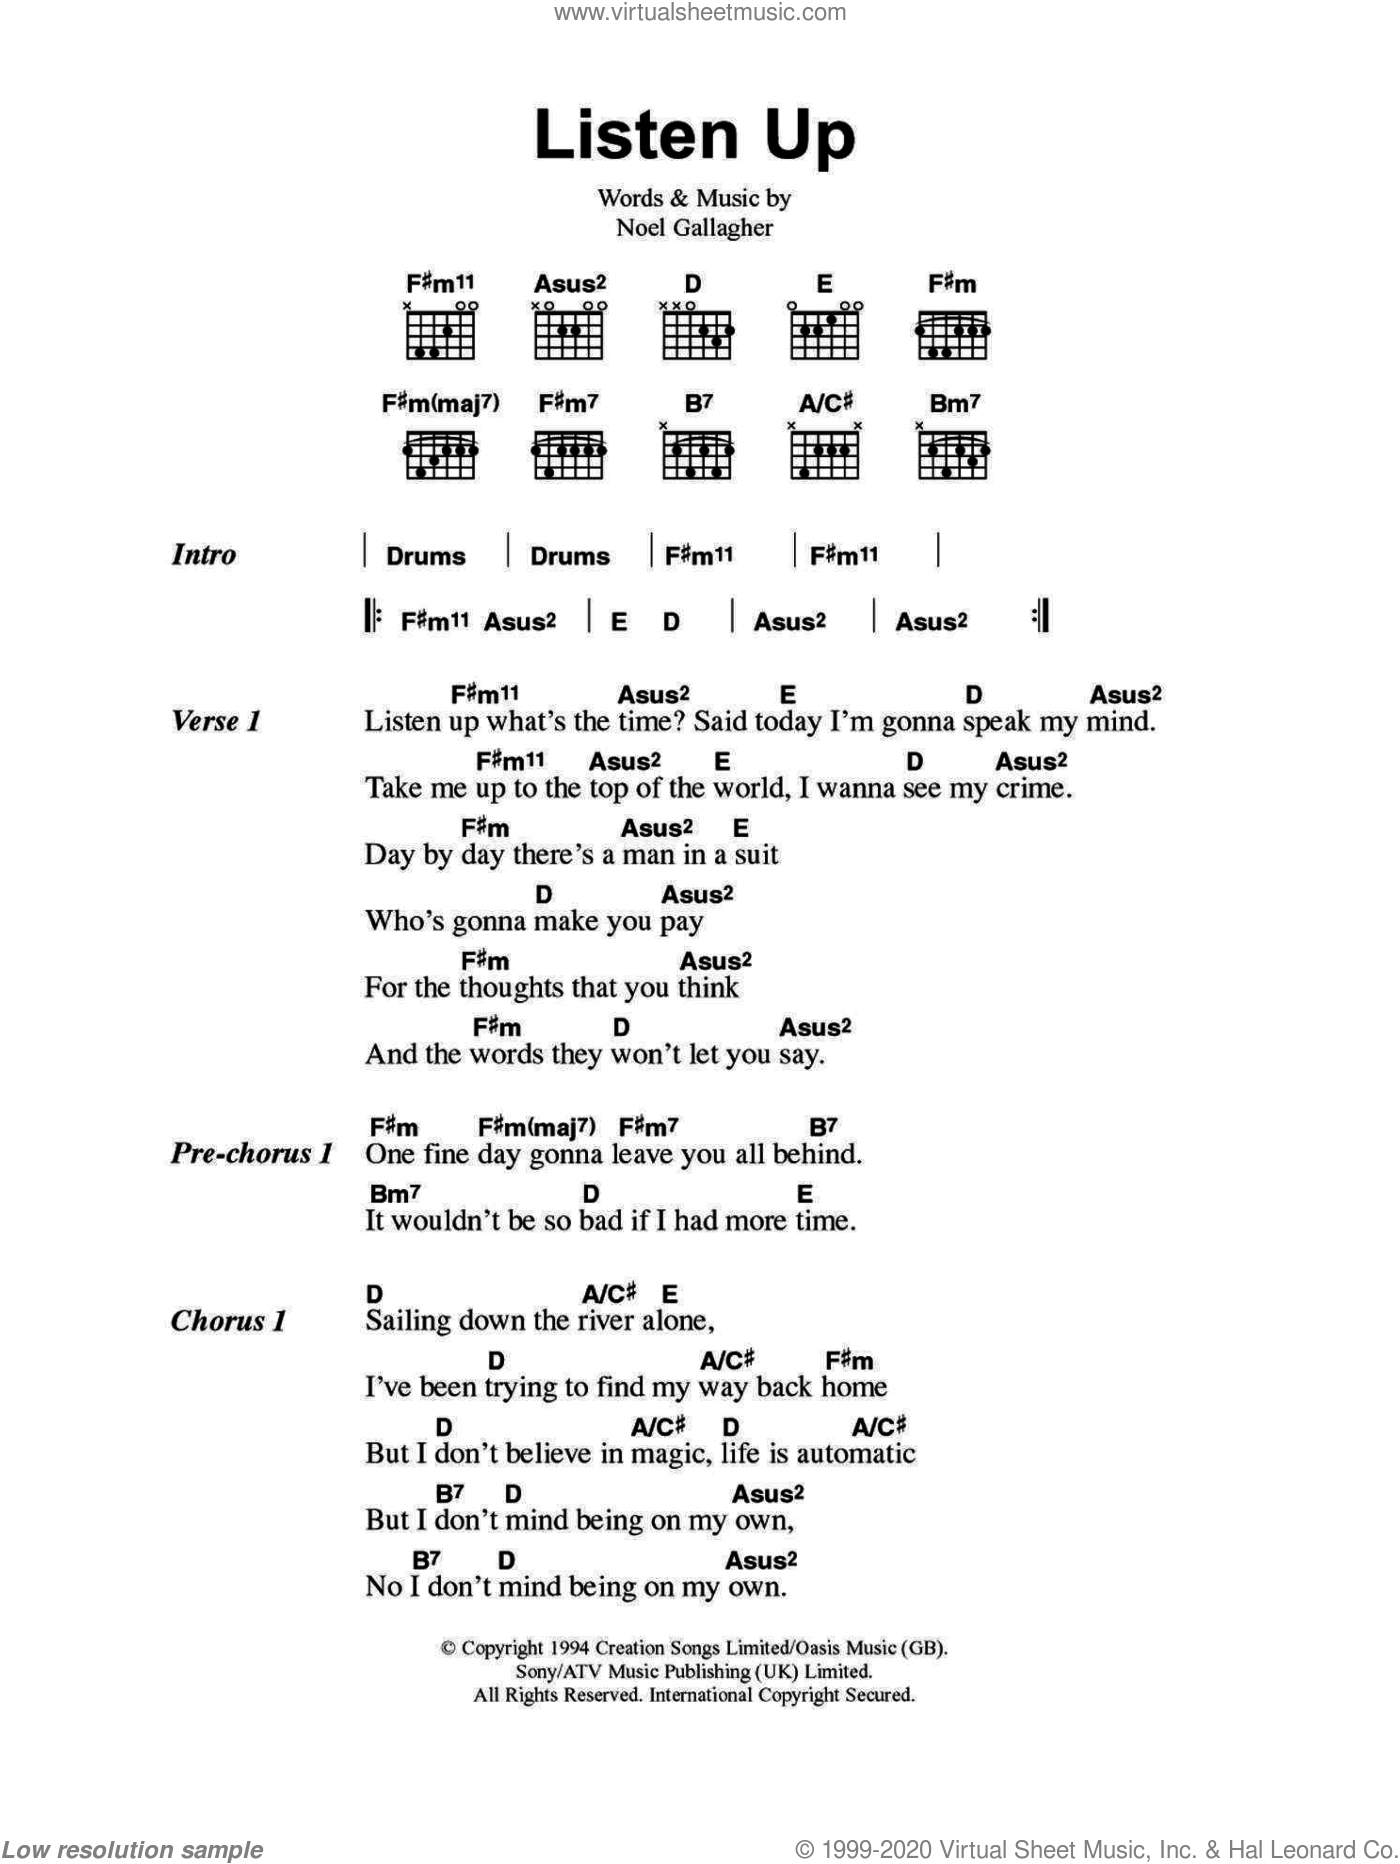 Listen Up sheet music for guitar (chords) by Oasis and Noel Gallagher, intermediate skill level